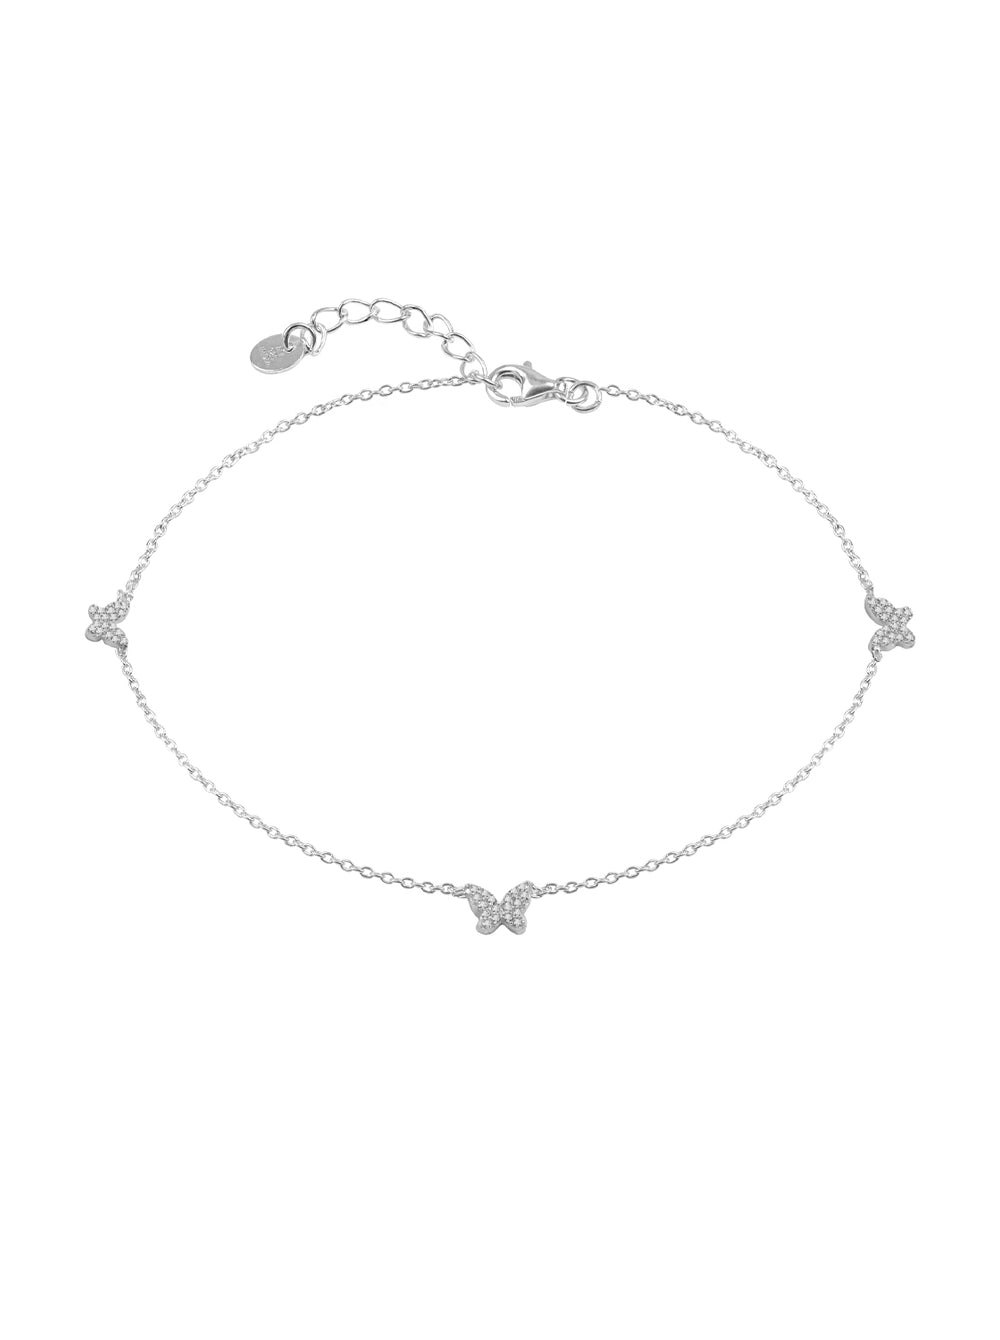 THE PAVE' BUTTERFLY ANKLET (CHAPTER II BY GREG YÜNA X THE M JEWELERS)